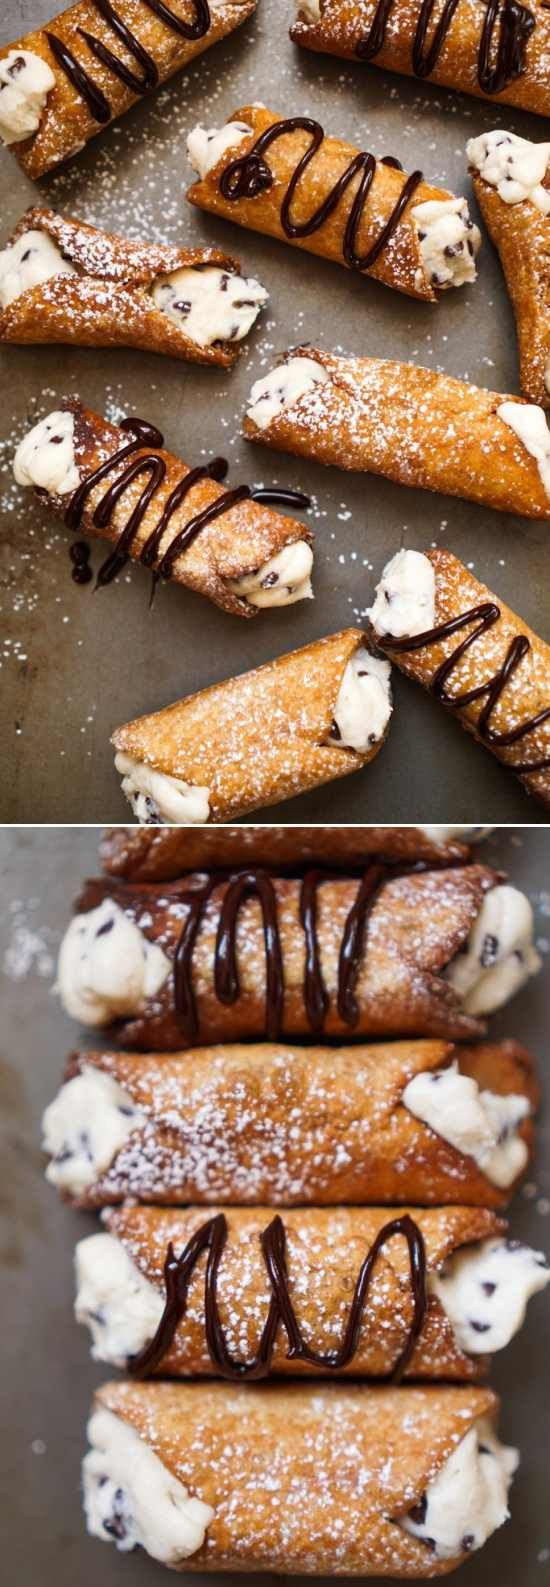 Did you hear about the Italian chef who died? He pasta way! Doctors cannoli do so much!  Lol, sorry for …